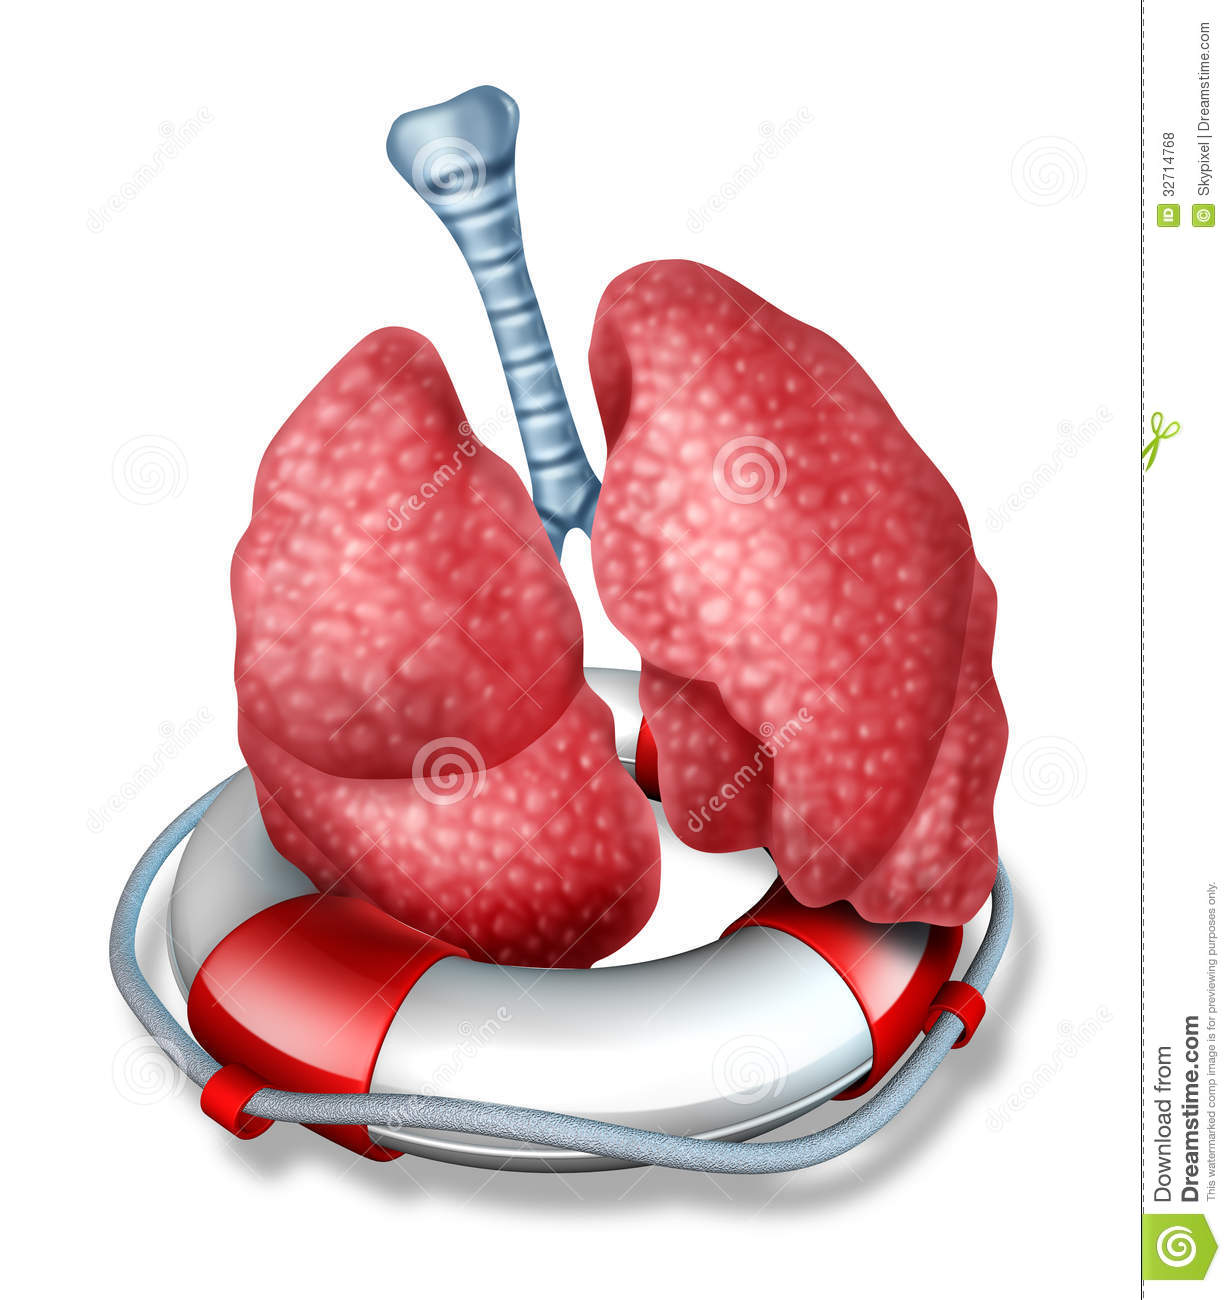 Respiratory Therapist Clipart The respiratory system of